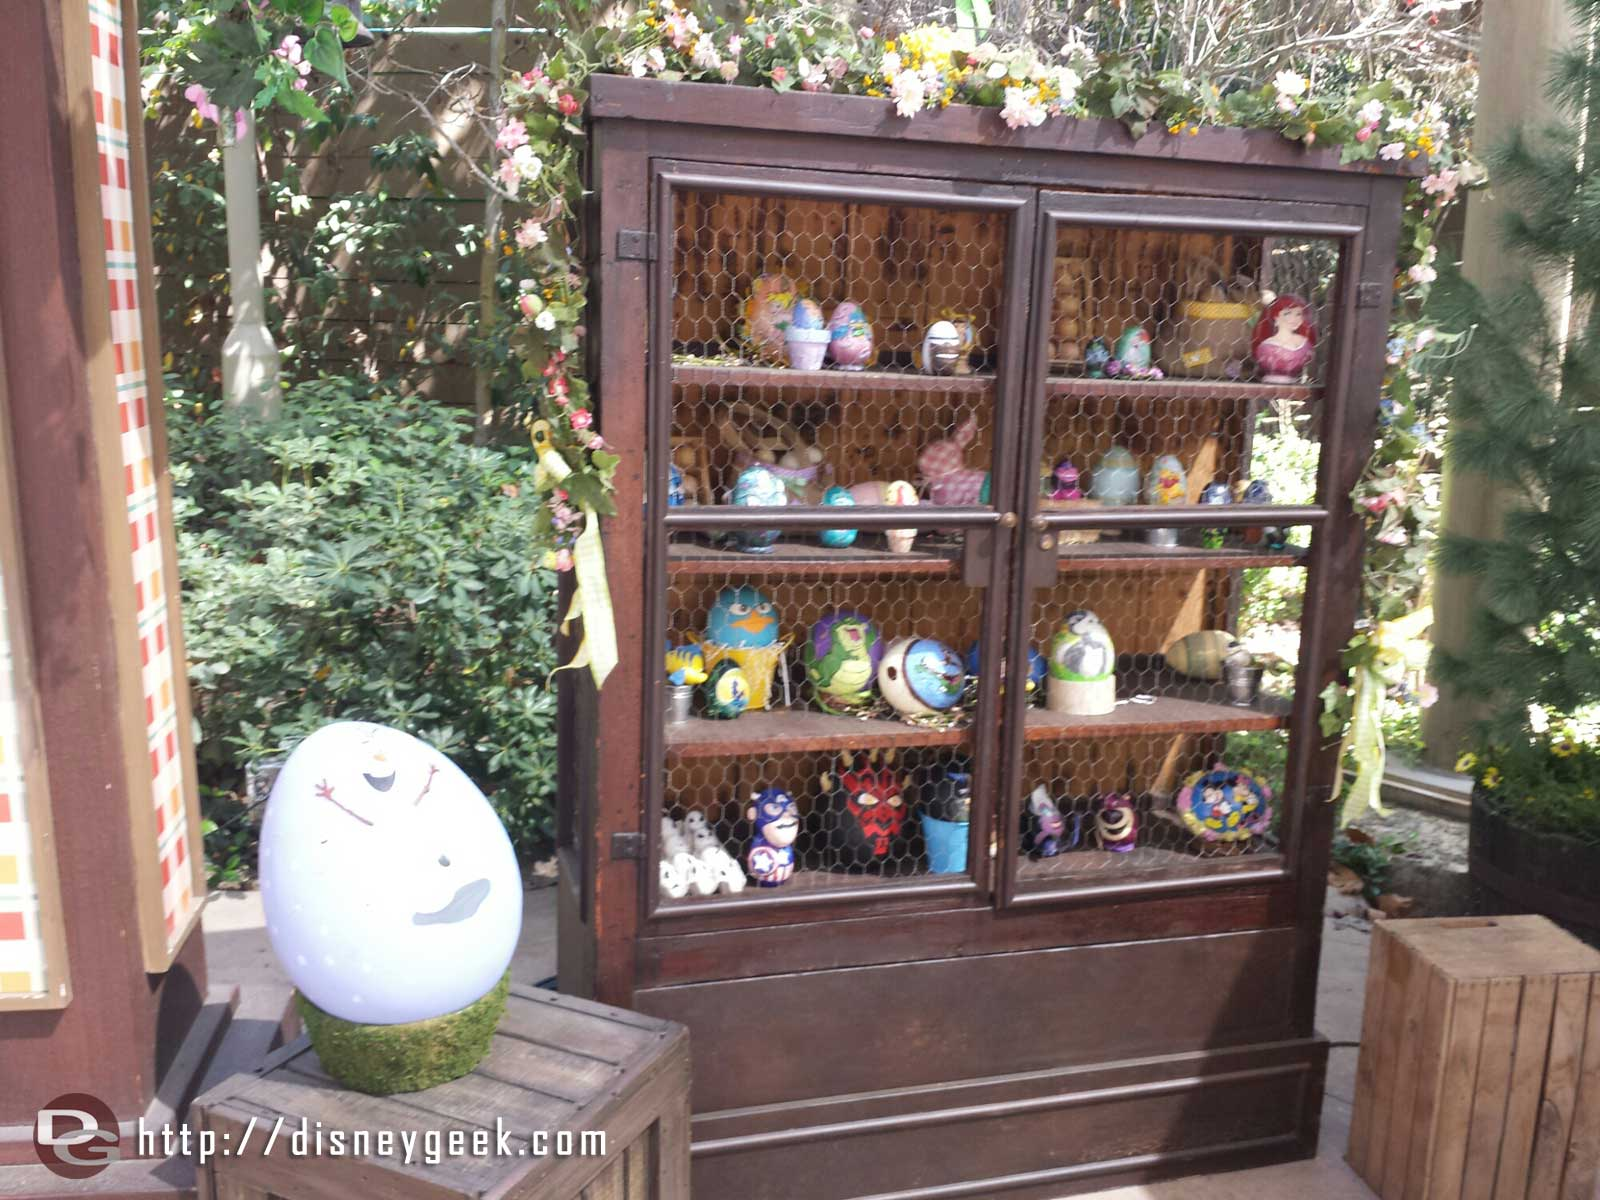 Checking in on the egg artwork at the Springtime Roundup in the Big Thunder Ranch Jamboree #Disneyland